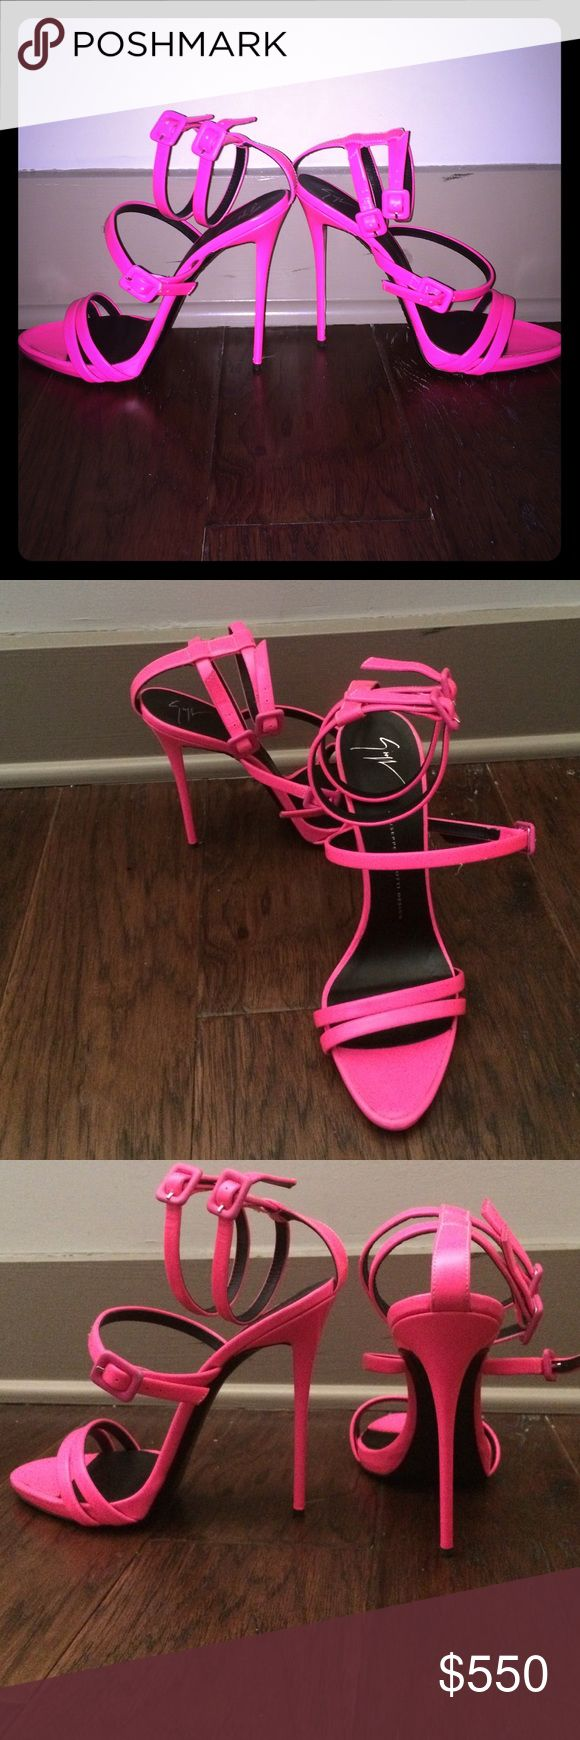 Giuseppe Heels size 41 Beautiful pink Giuseppe Zanotti heels size 41 with box. Never worn. Minor scuffs from trying them on Giuseppe Zanotti Shoes Heels